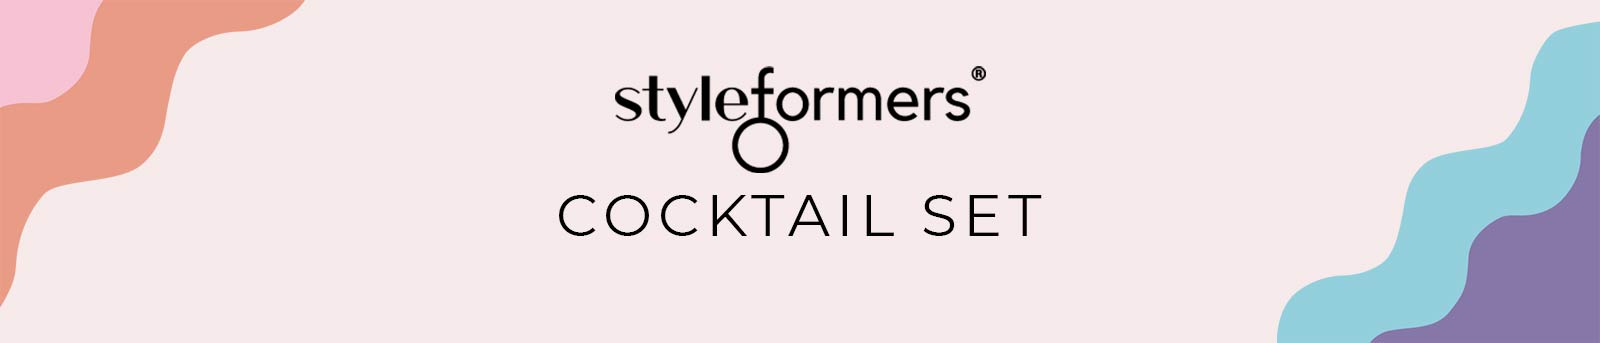 Save-on-Sets-Styleformers-Cocktail-Set